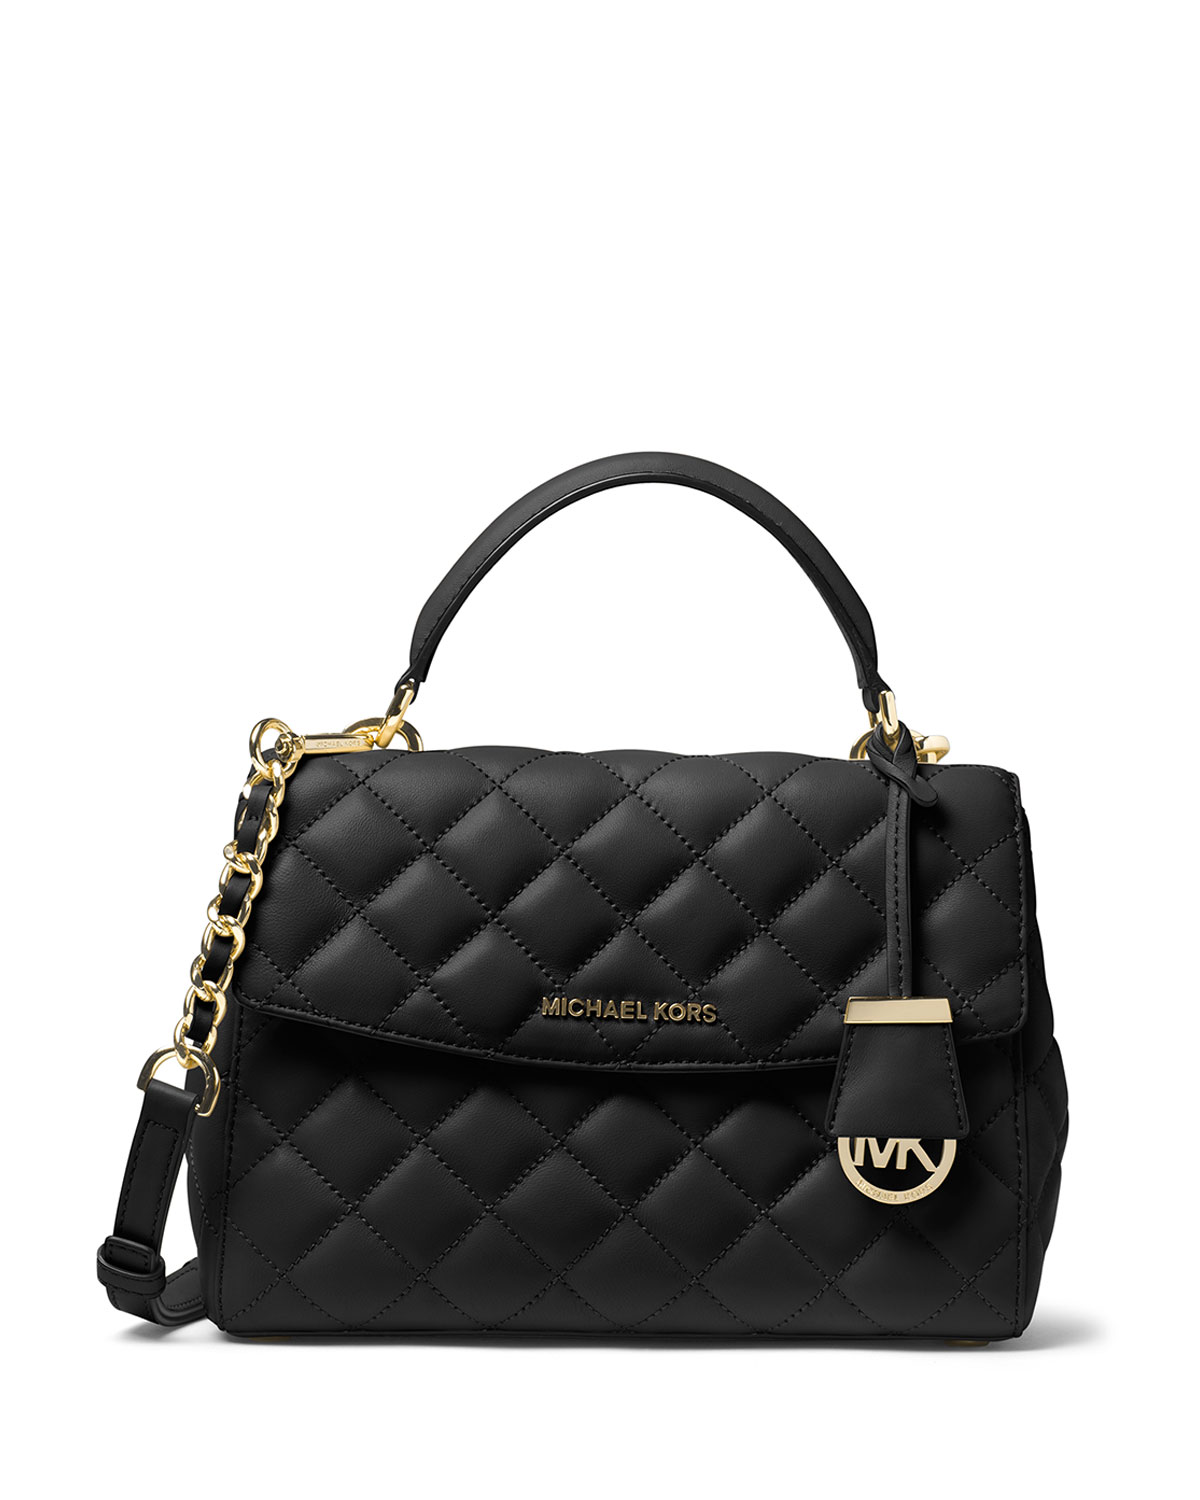 455d74421a51 MICHAEL Michael Kors Ava Small Quilted Leather Satchel Bag, Black ...